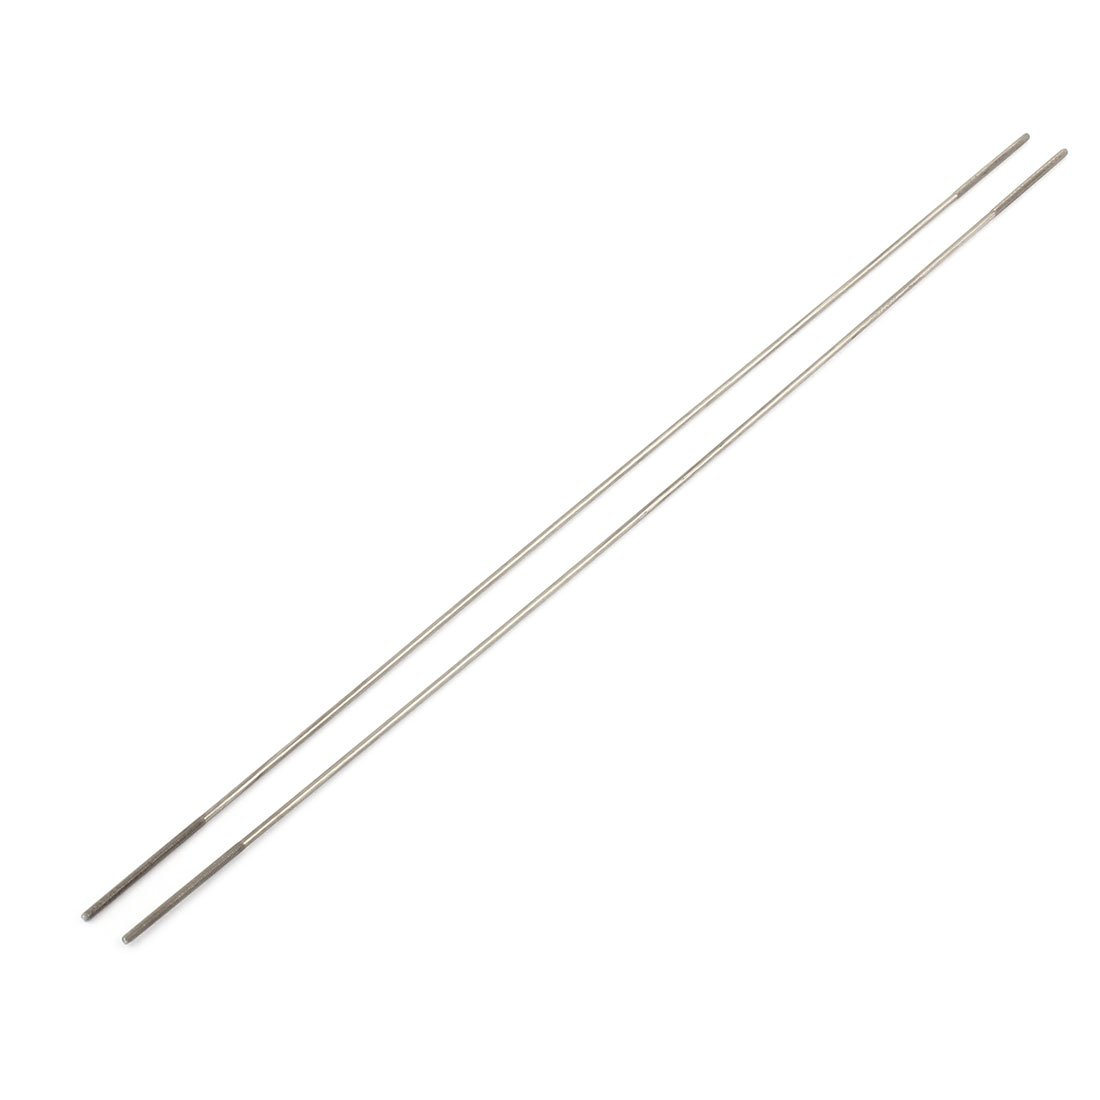 uxcell 2pcs RC Airplane Parts 2mm Dia Threaded Both End Metal Push Rod 300mm Length a16060200ux0039